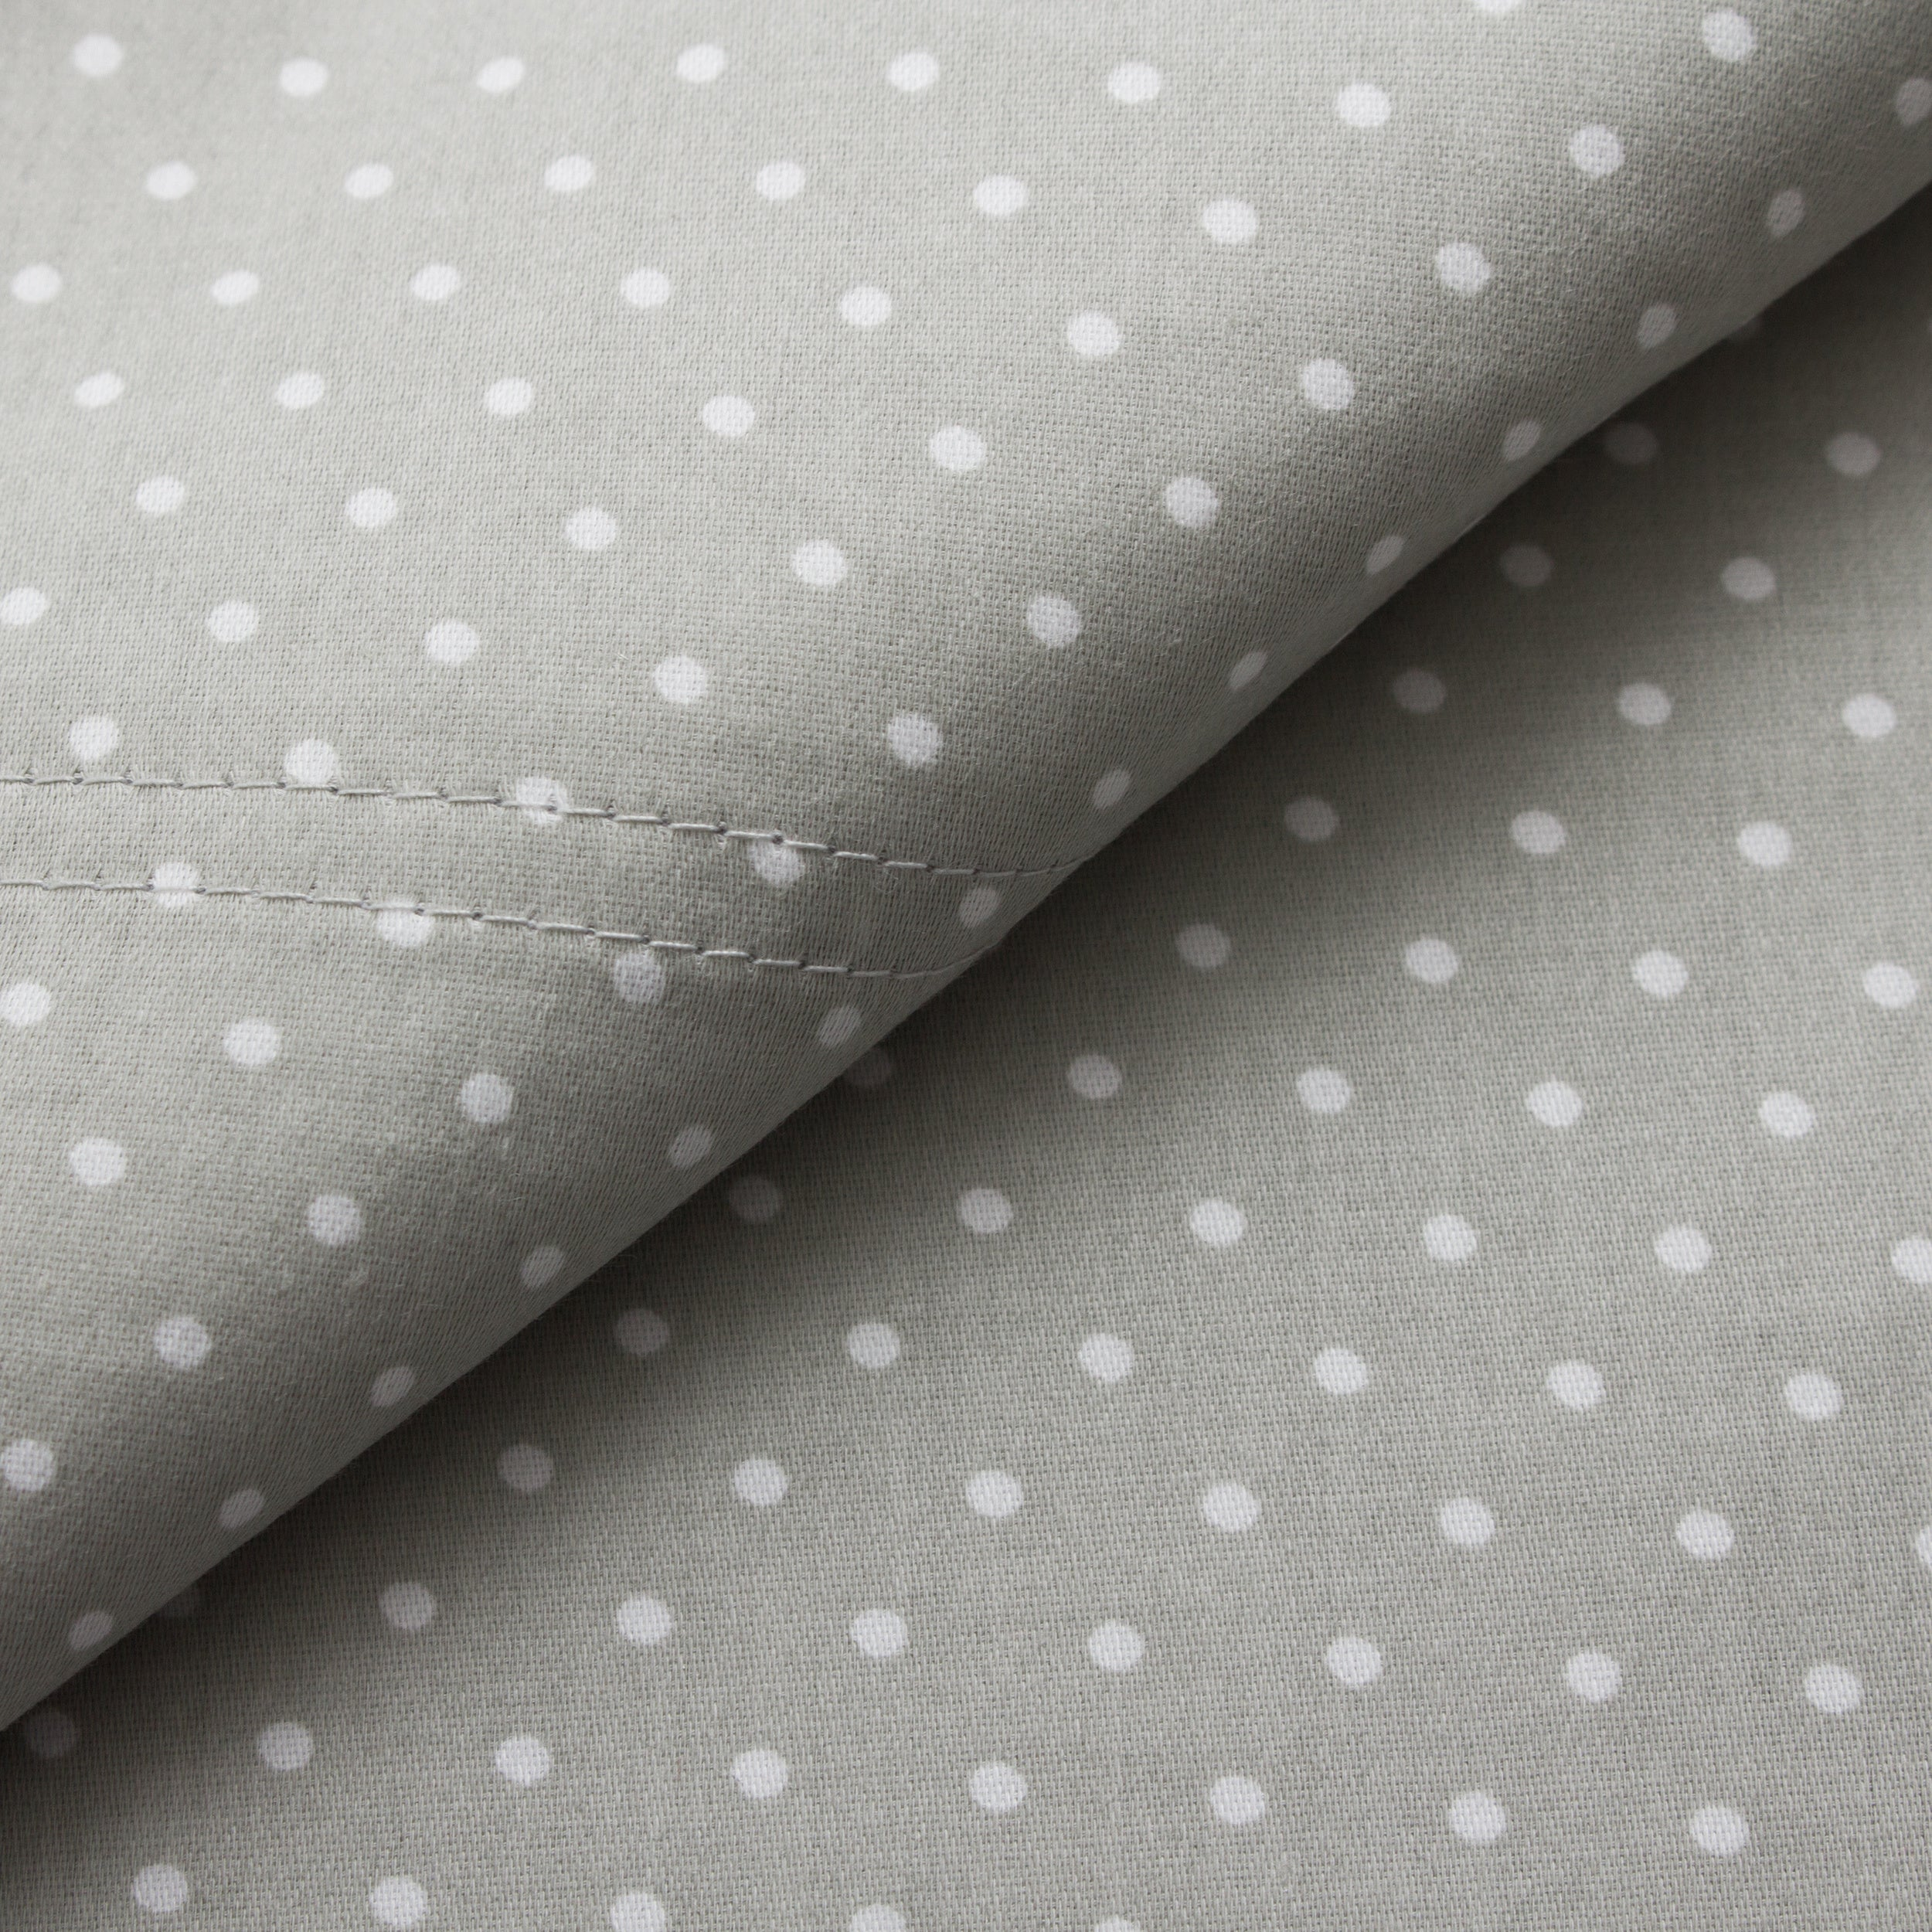 Swiss Polka dot Colorful 300 Thread Count Cotton Sheet Set Free